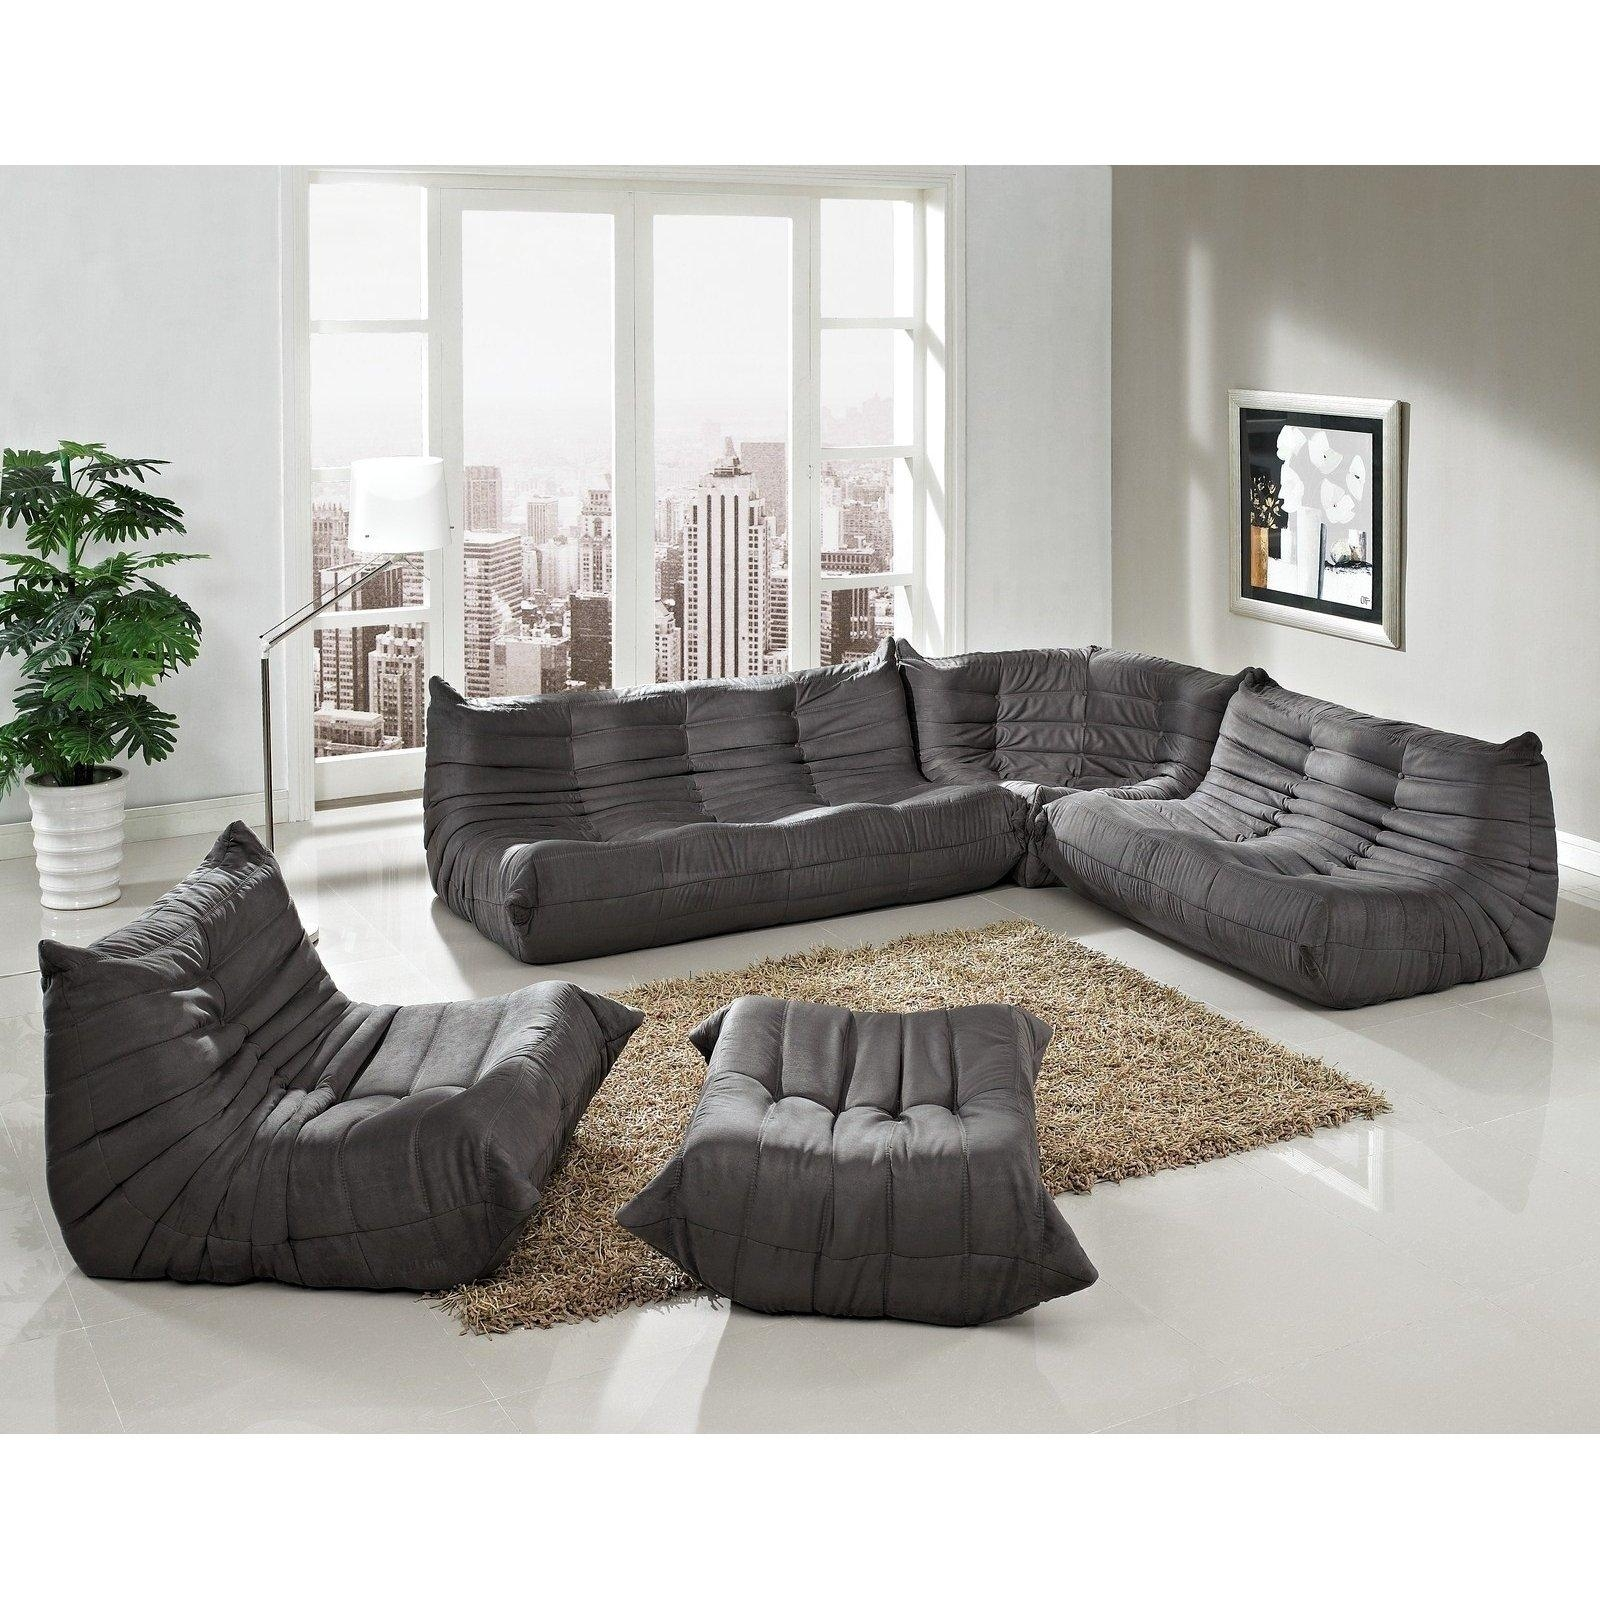 Furniture: Microfiber Sofas | Grey Sectional Sleeper Sofa | Gray Pertaining To Microsuede Sleeper Sofas (Image 8 of 20)